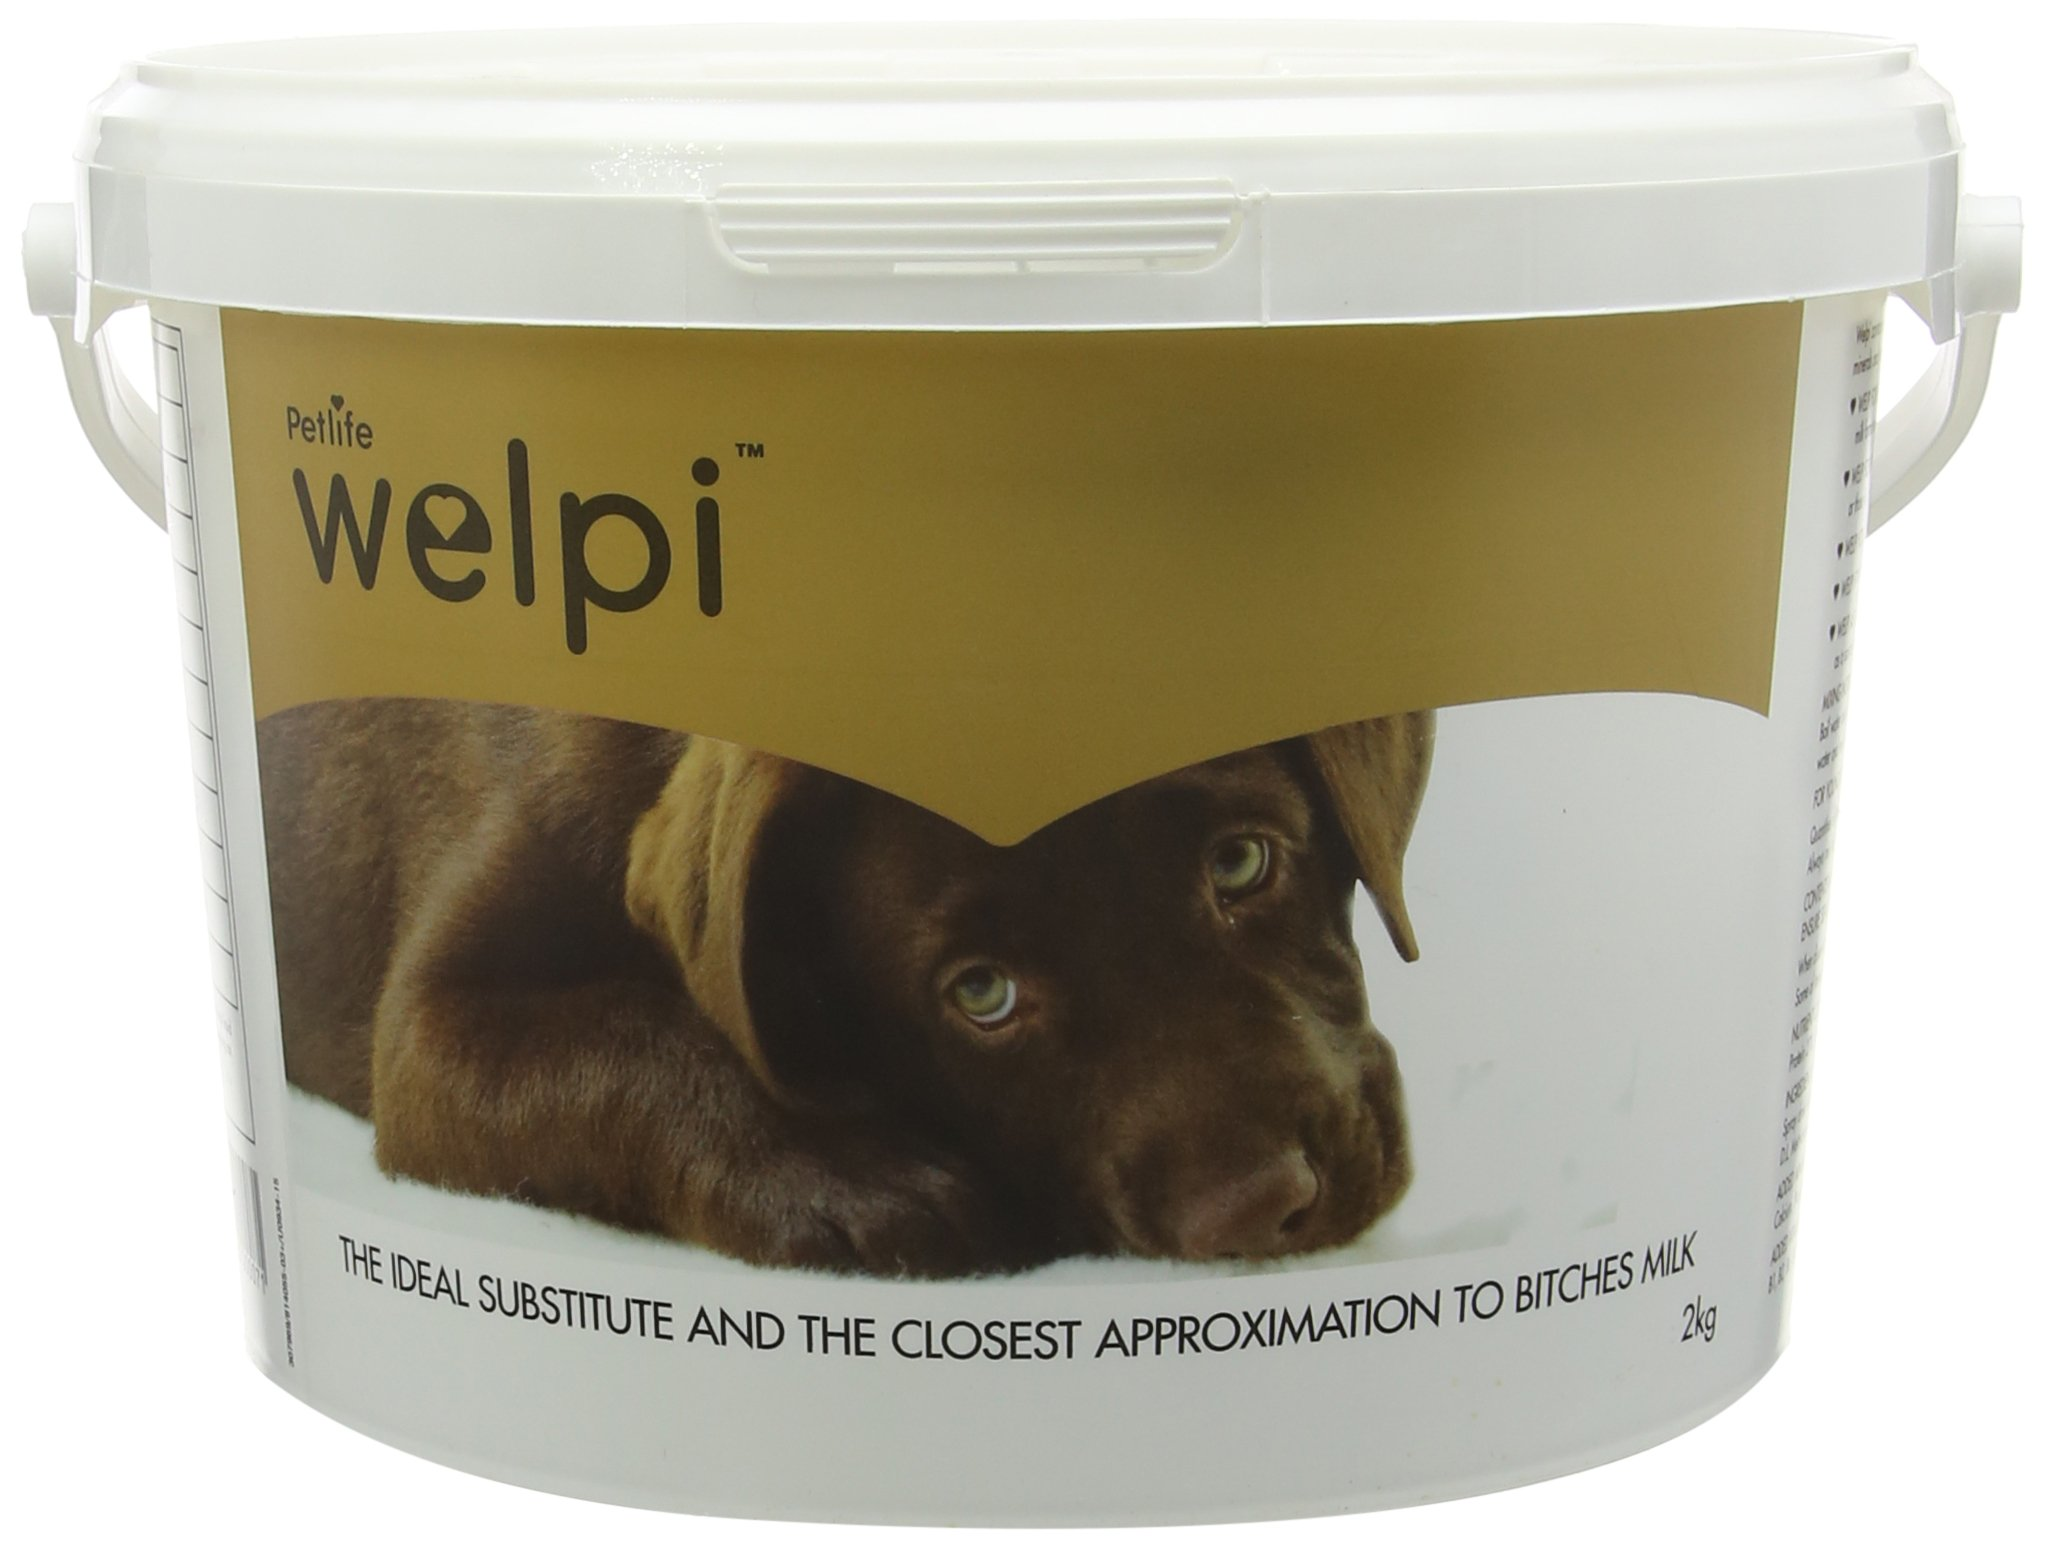 Petlife Welpi Milk Replacer And Nutritional Supplement For Dog, All Life